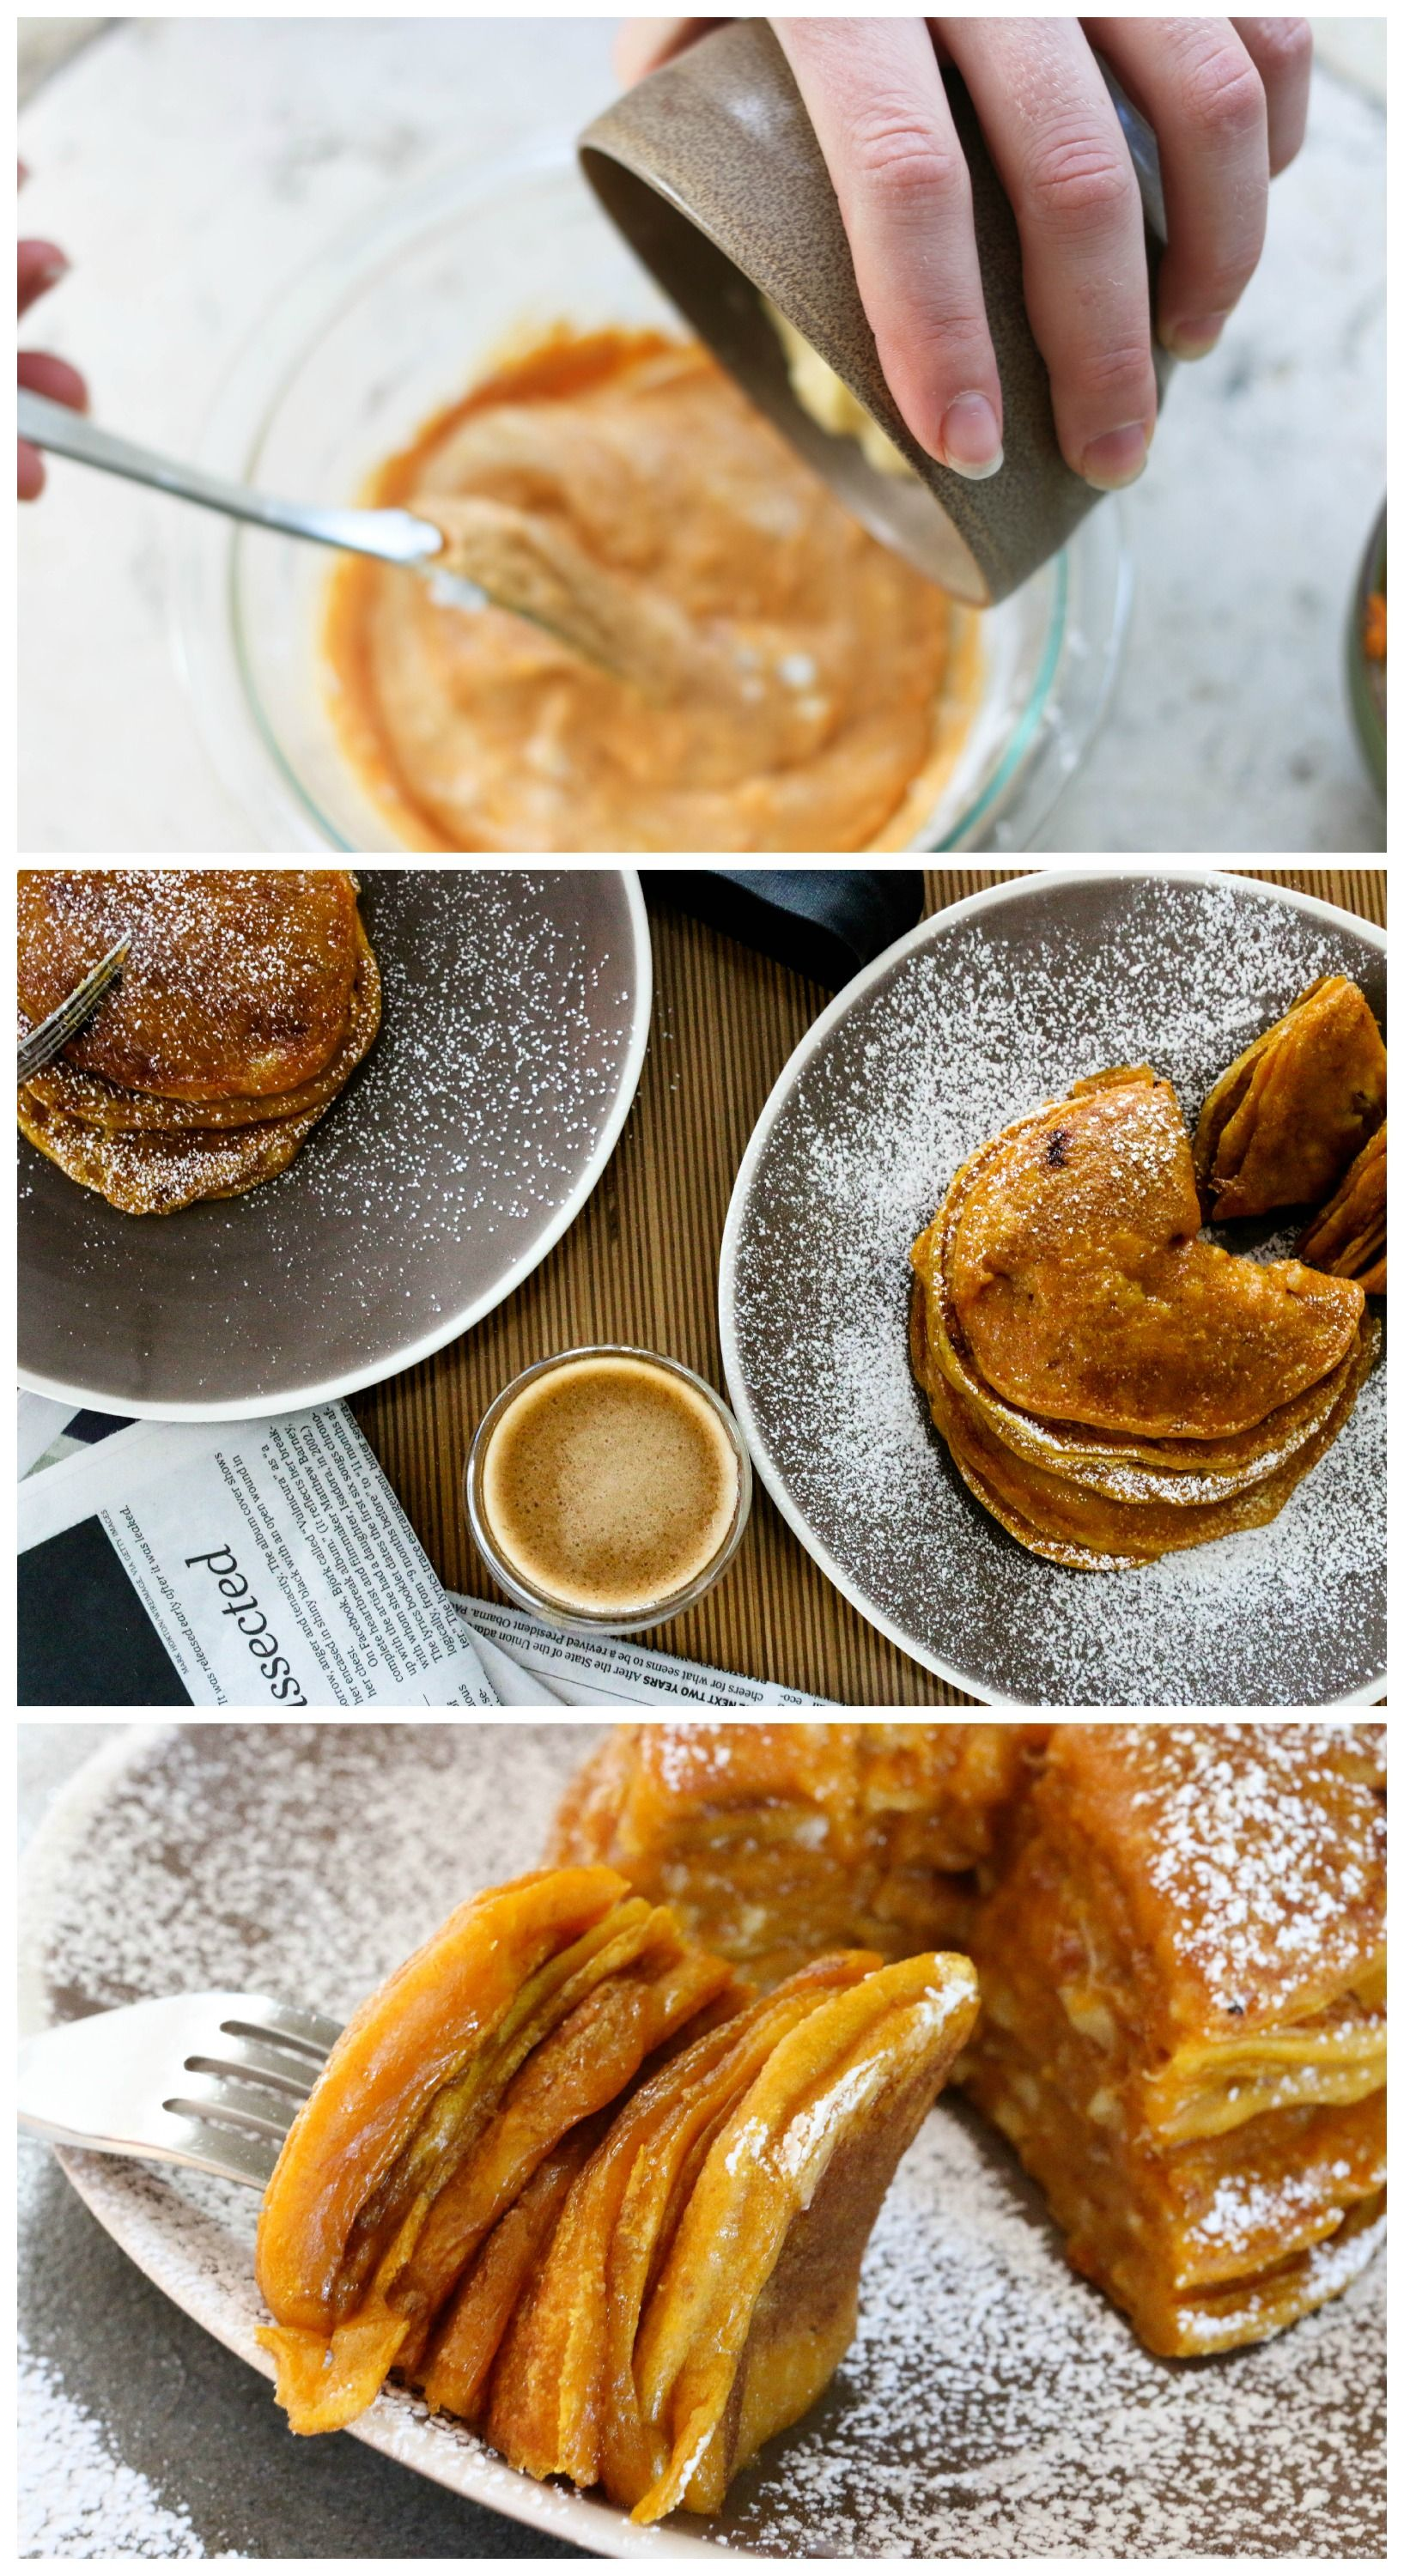 Packed with potassium and betacarotene, these pancakes